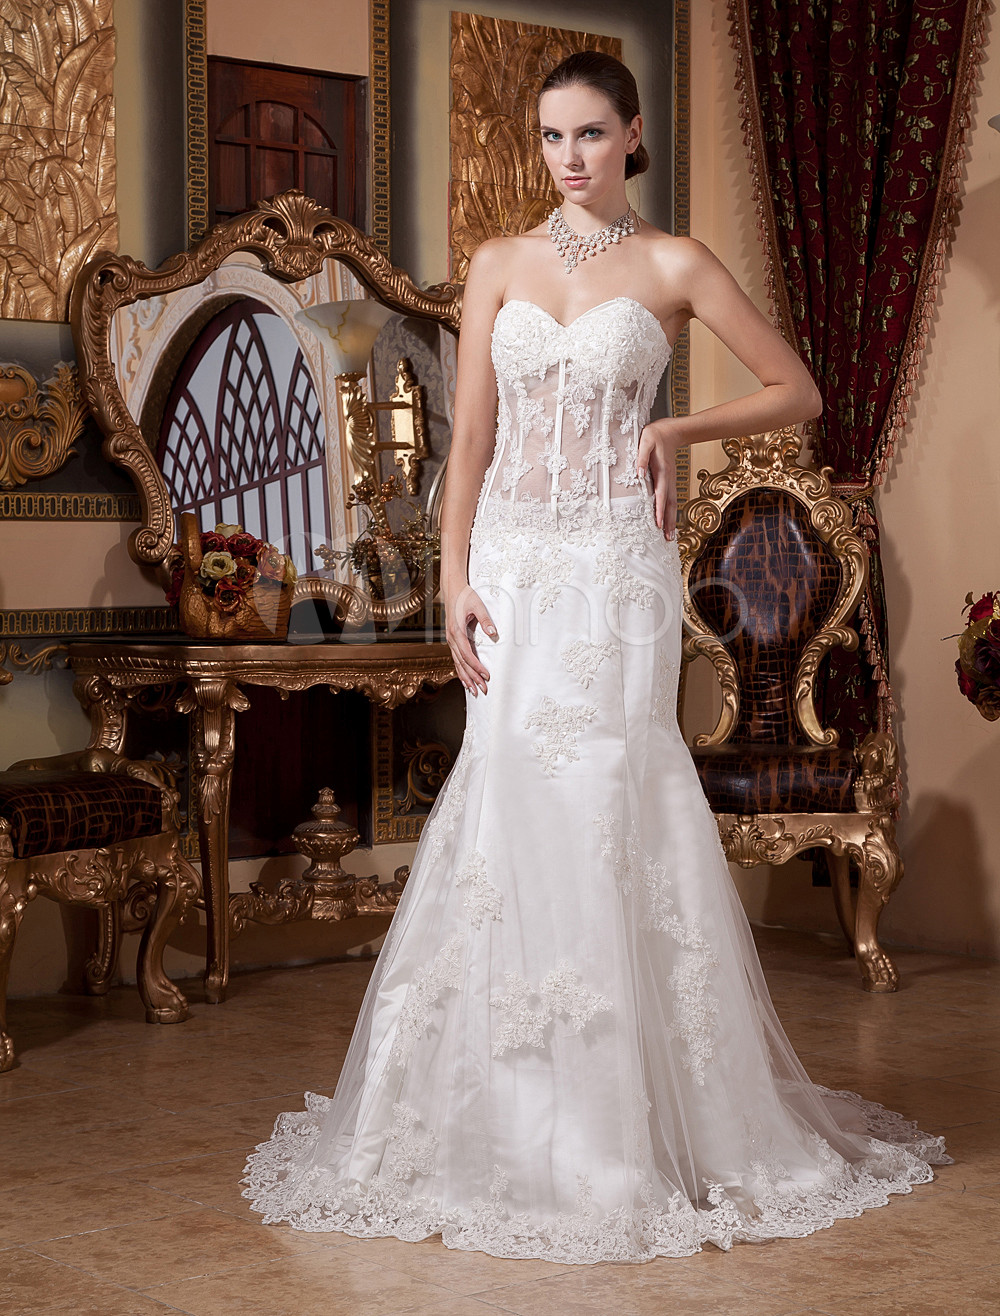 sheer lace overlay wedding dress sheer lace wedding dress Sheer Shoulder Satin Wedding Dress With Lace Overlay